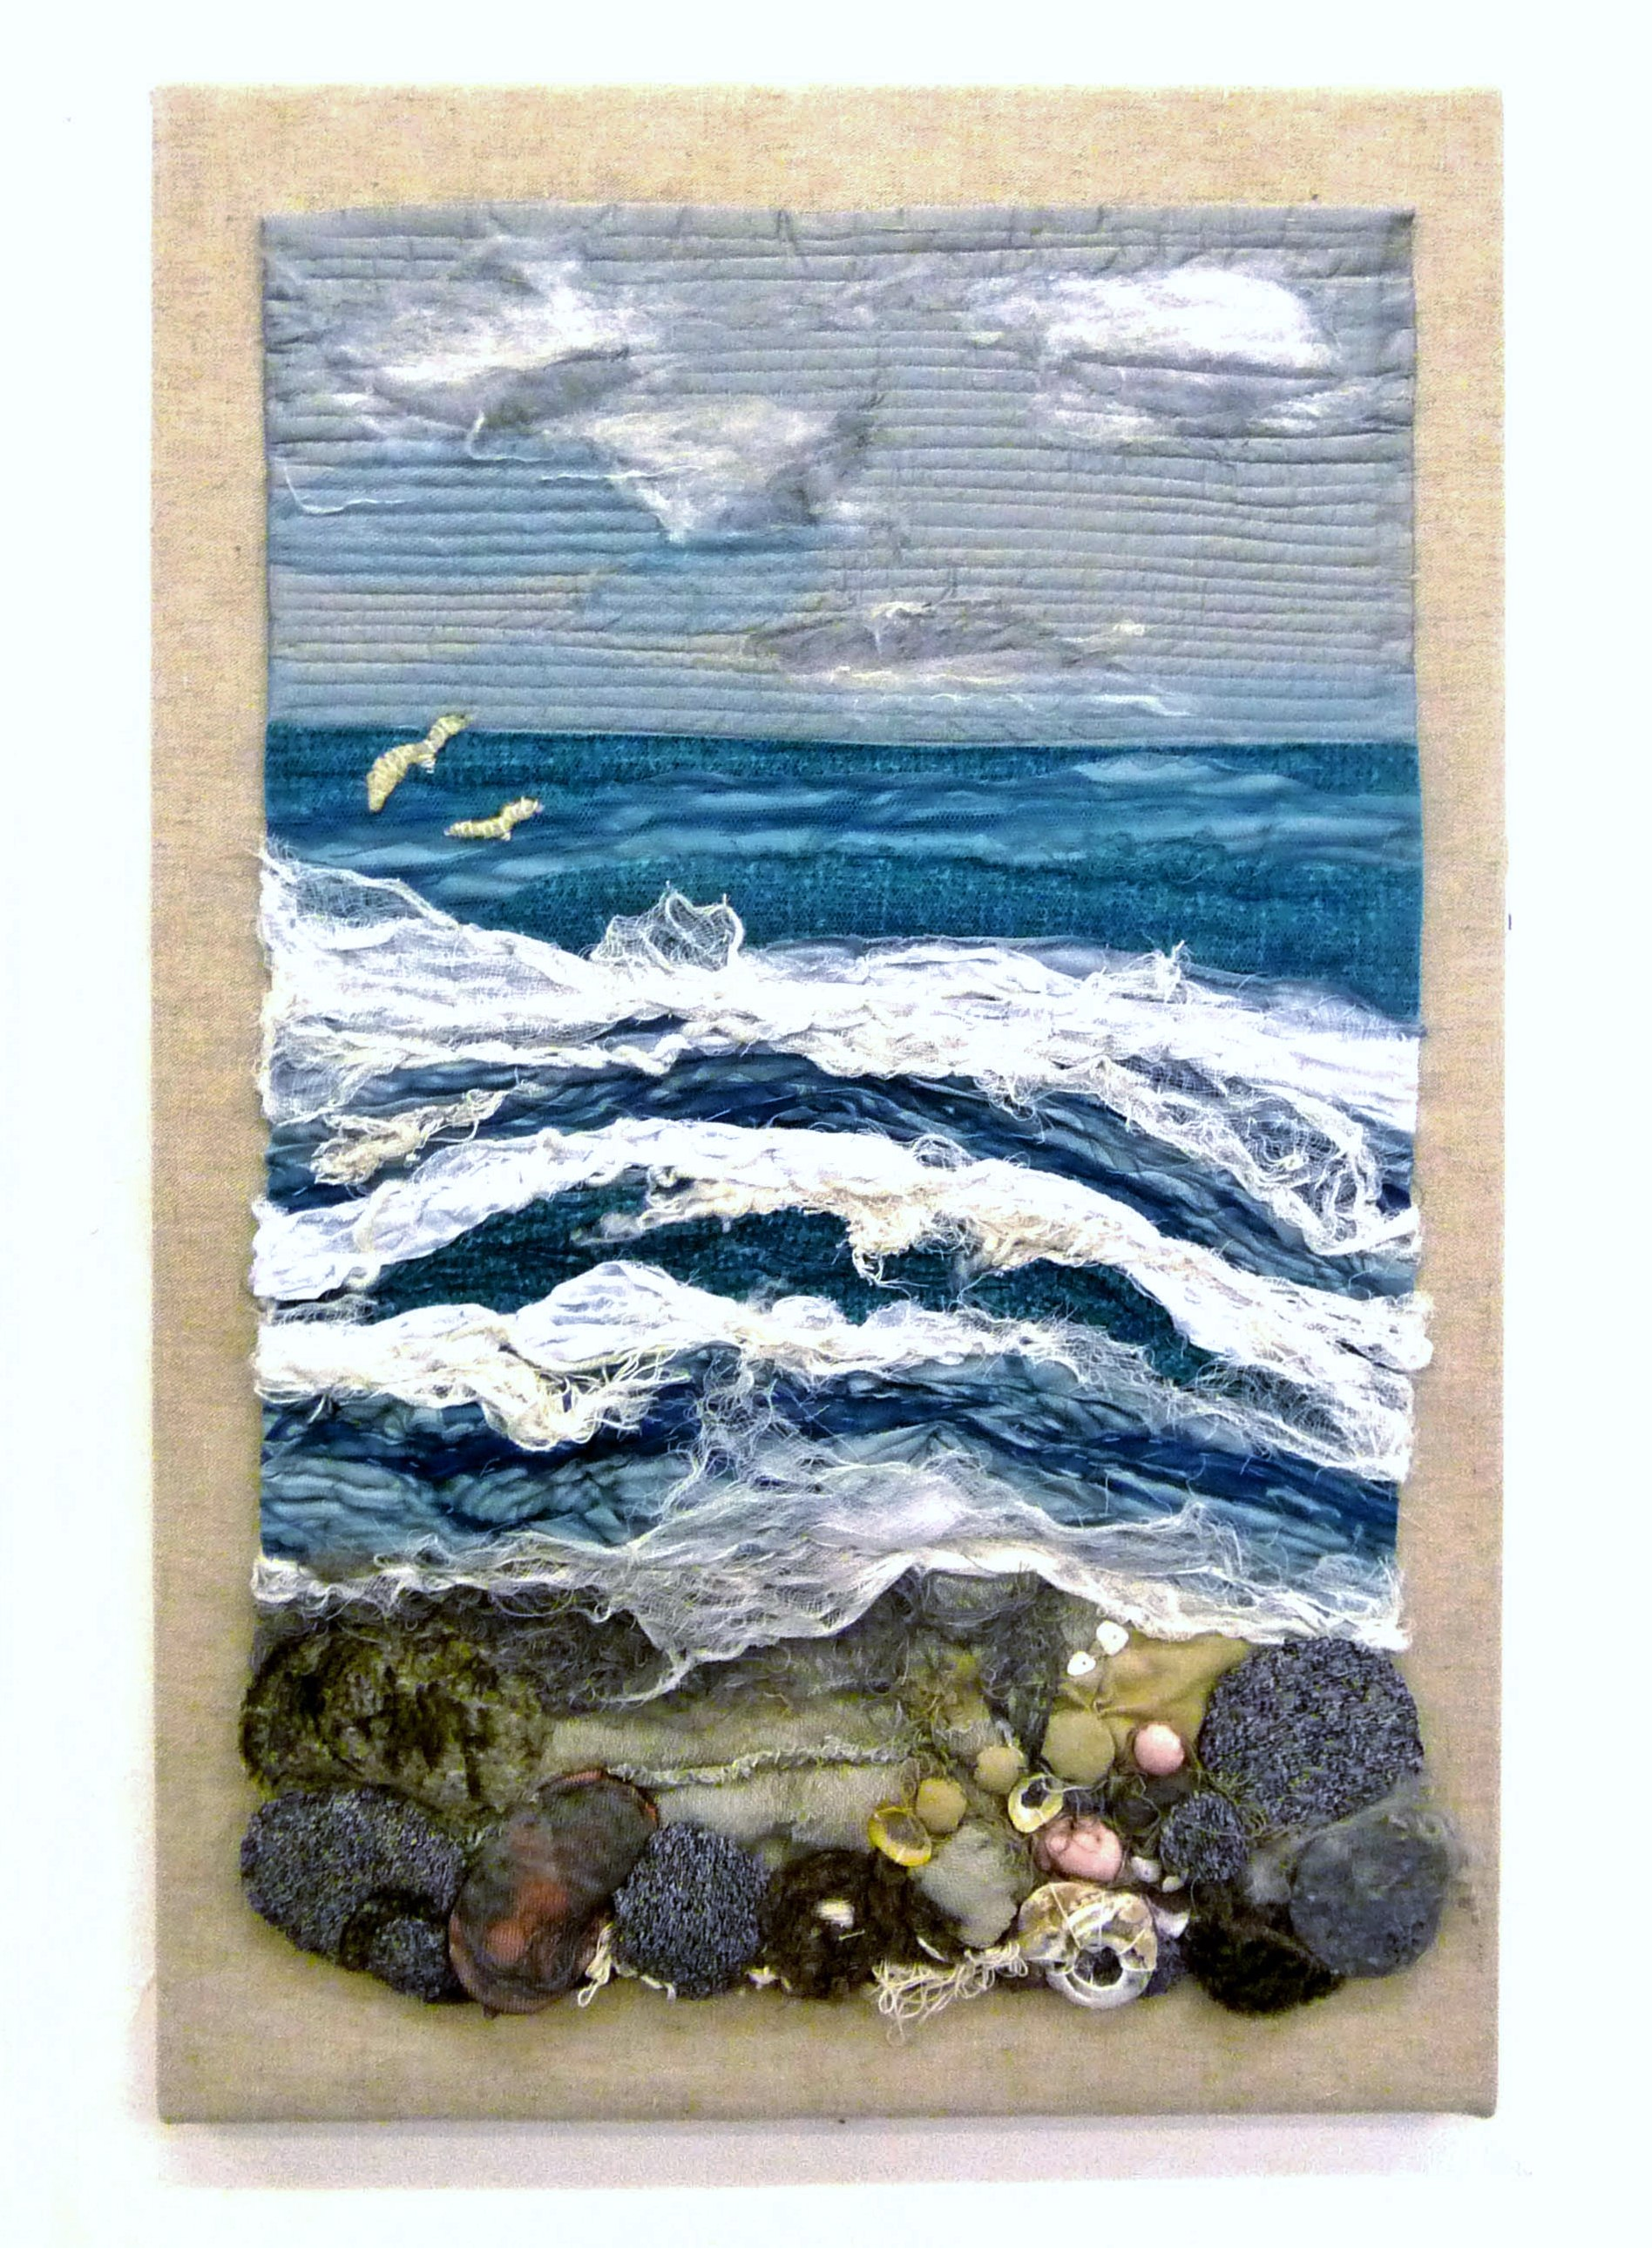 STORMY SEA by Rosey Paul, textile